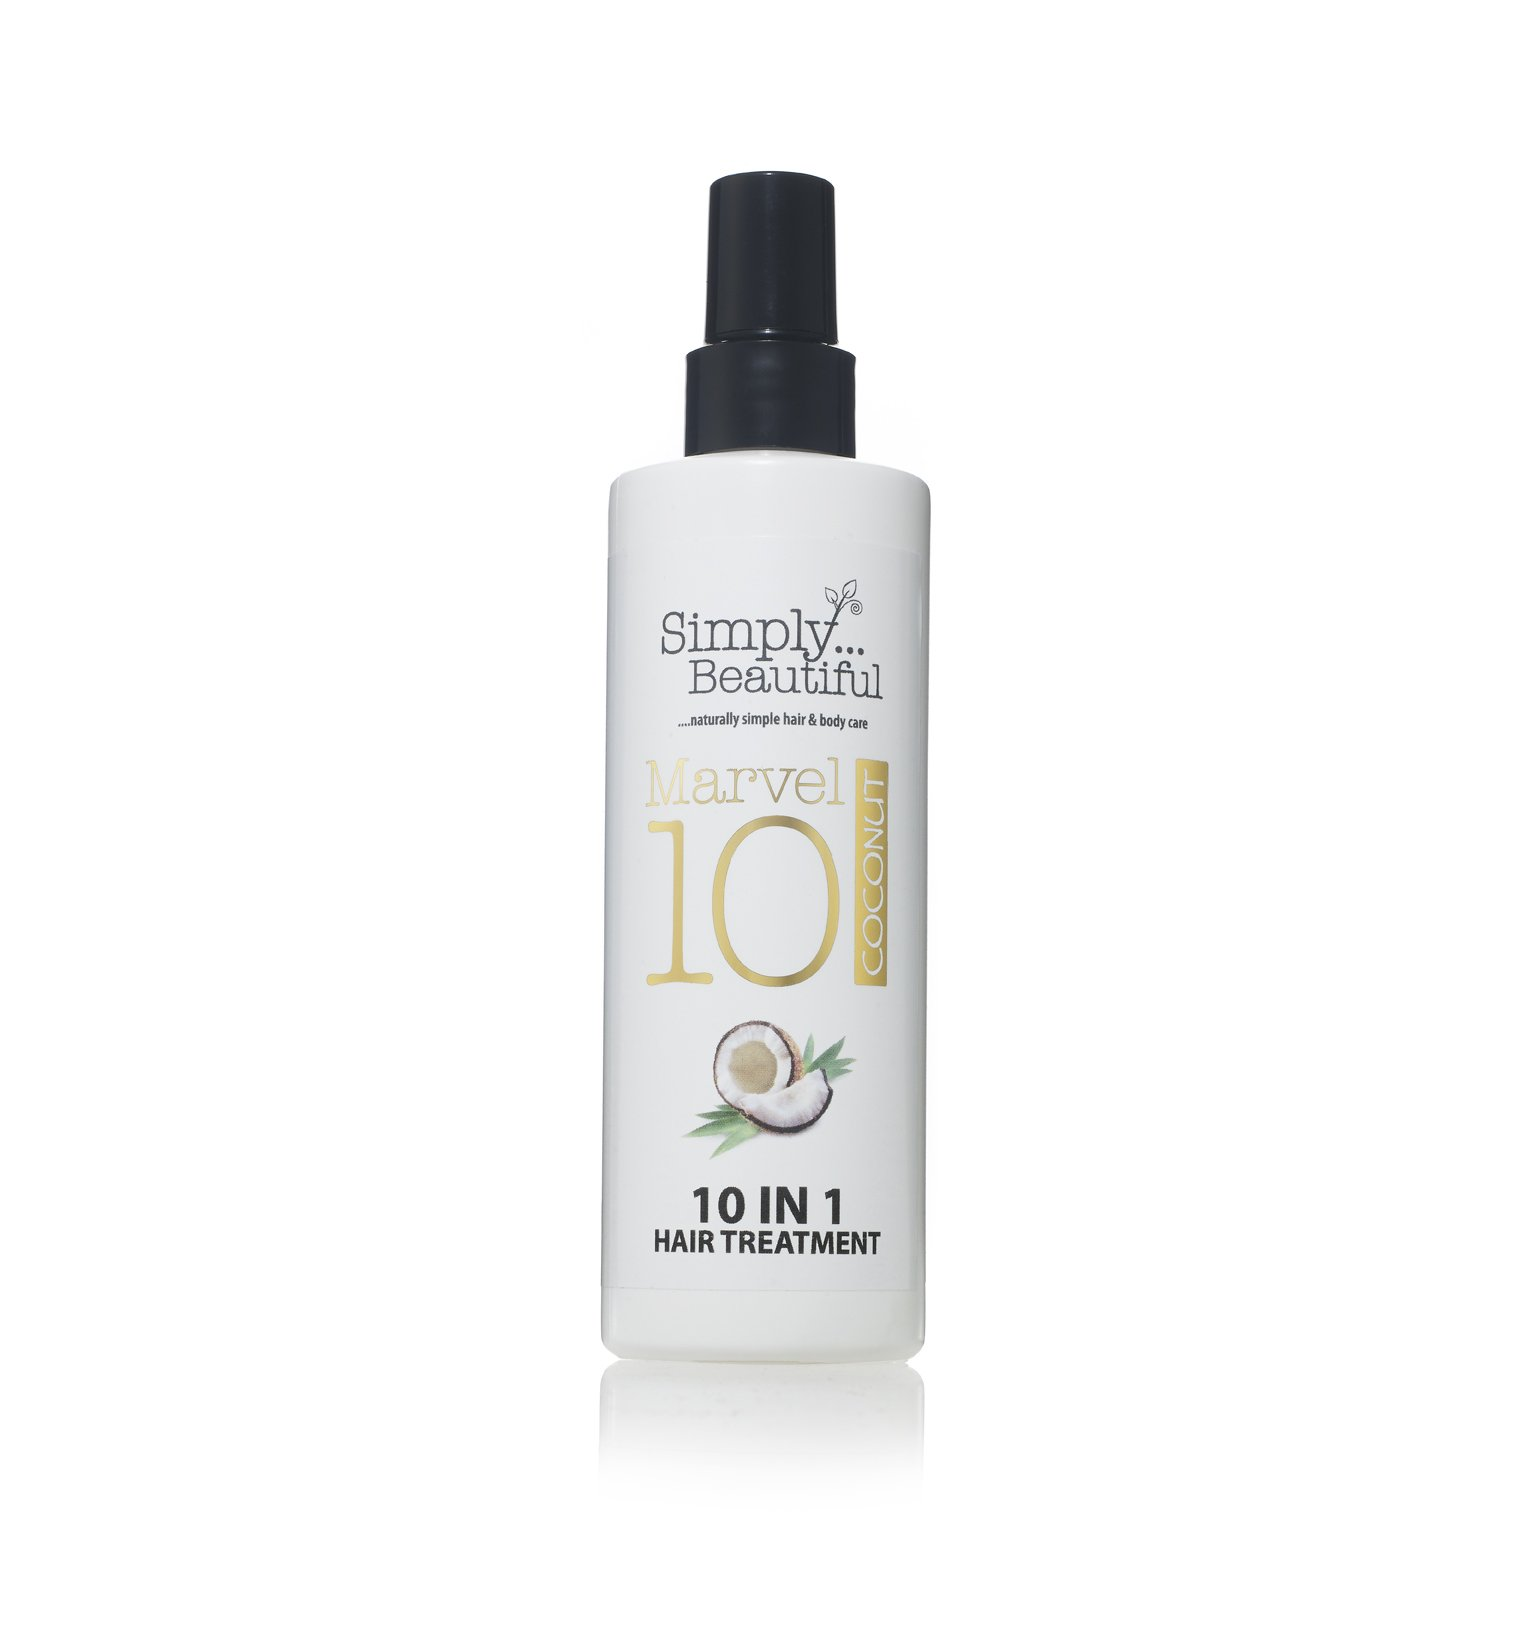 Coconut Heat Protection Spray and Damaged Hair Repair Treatment, 10 Amazing Treatments in 1 Bottle - 250ml